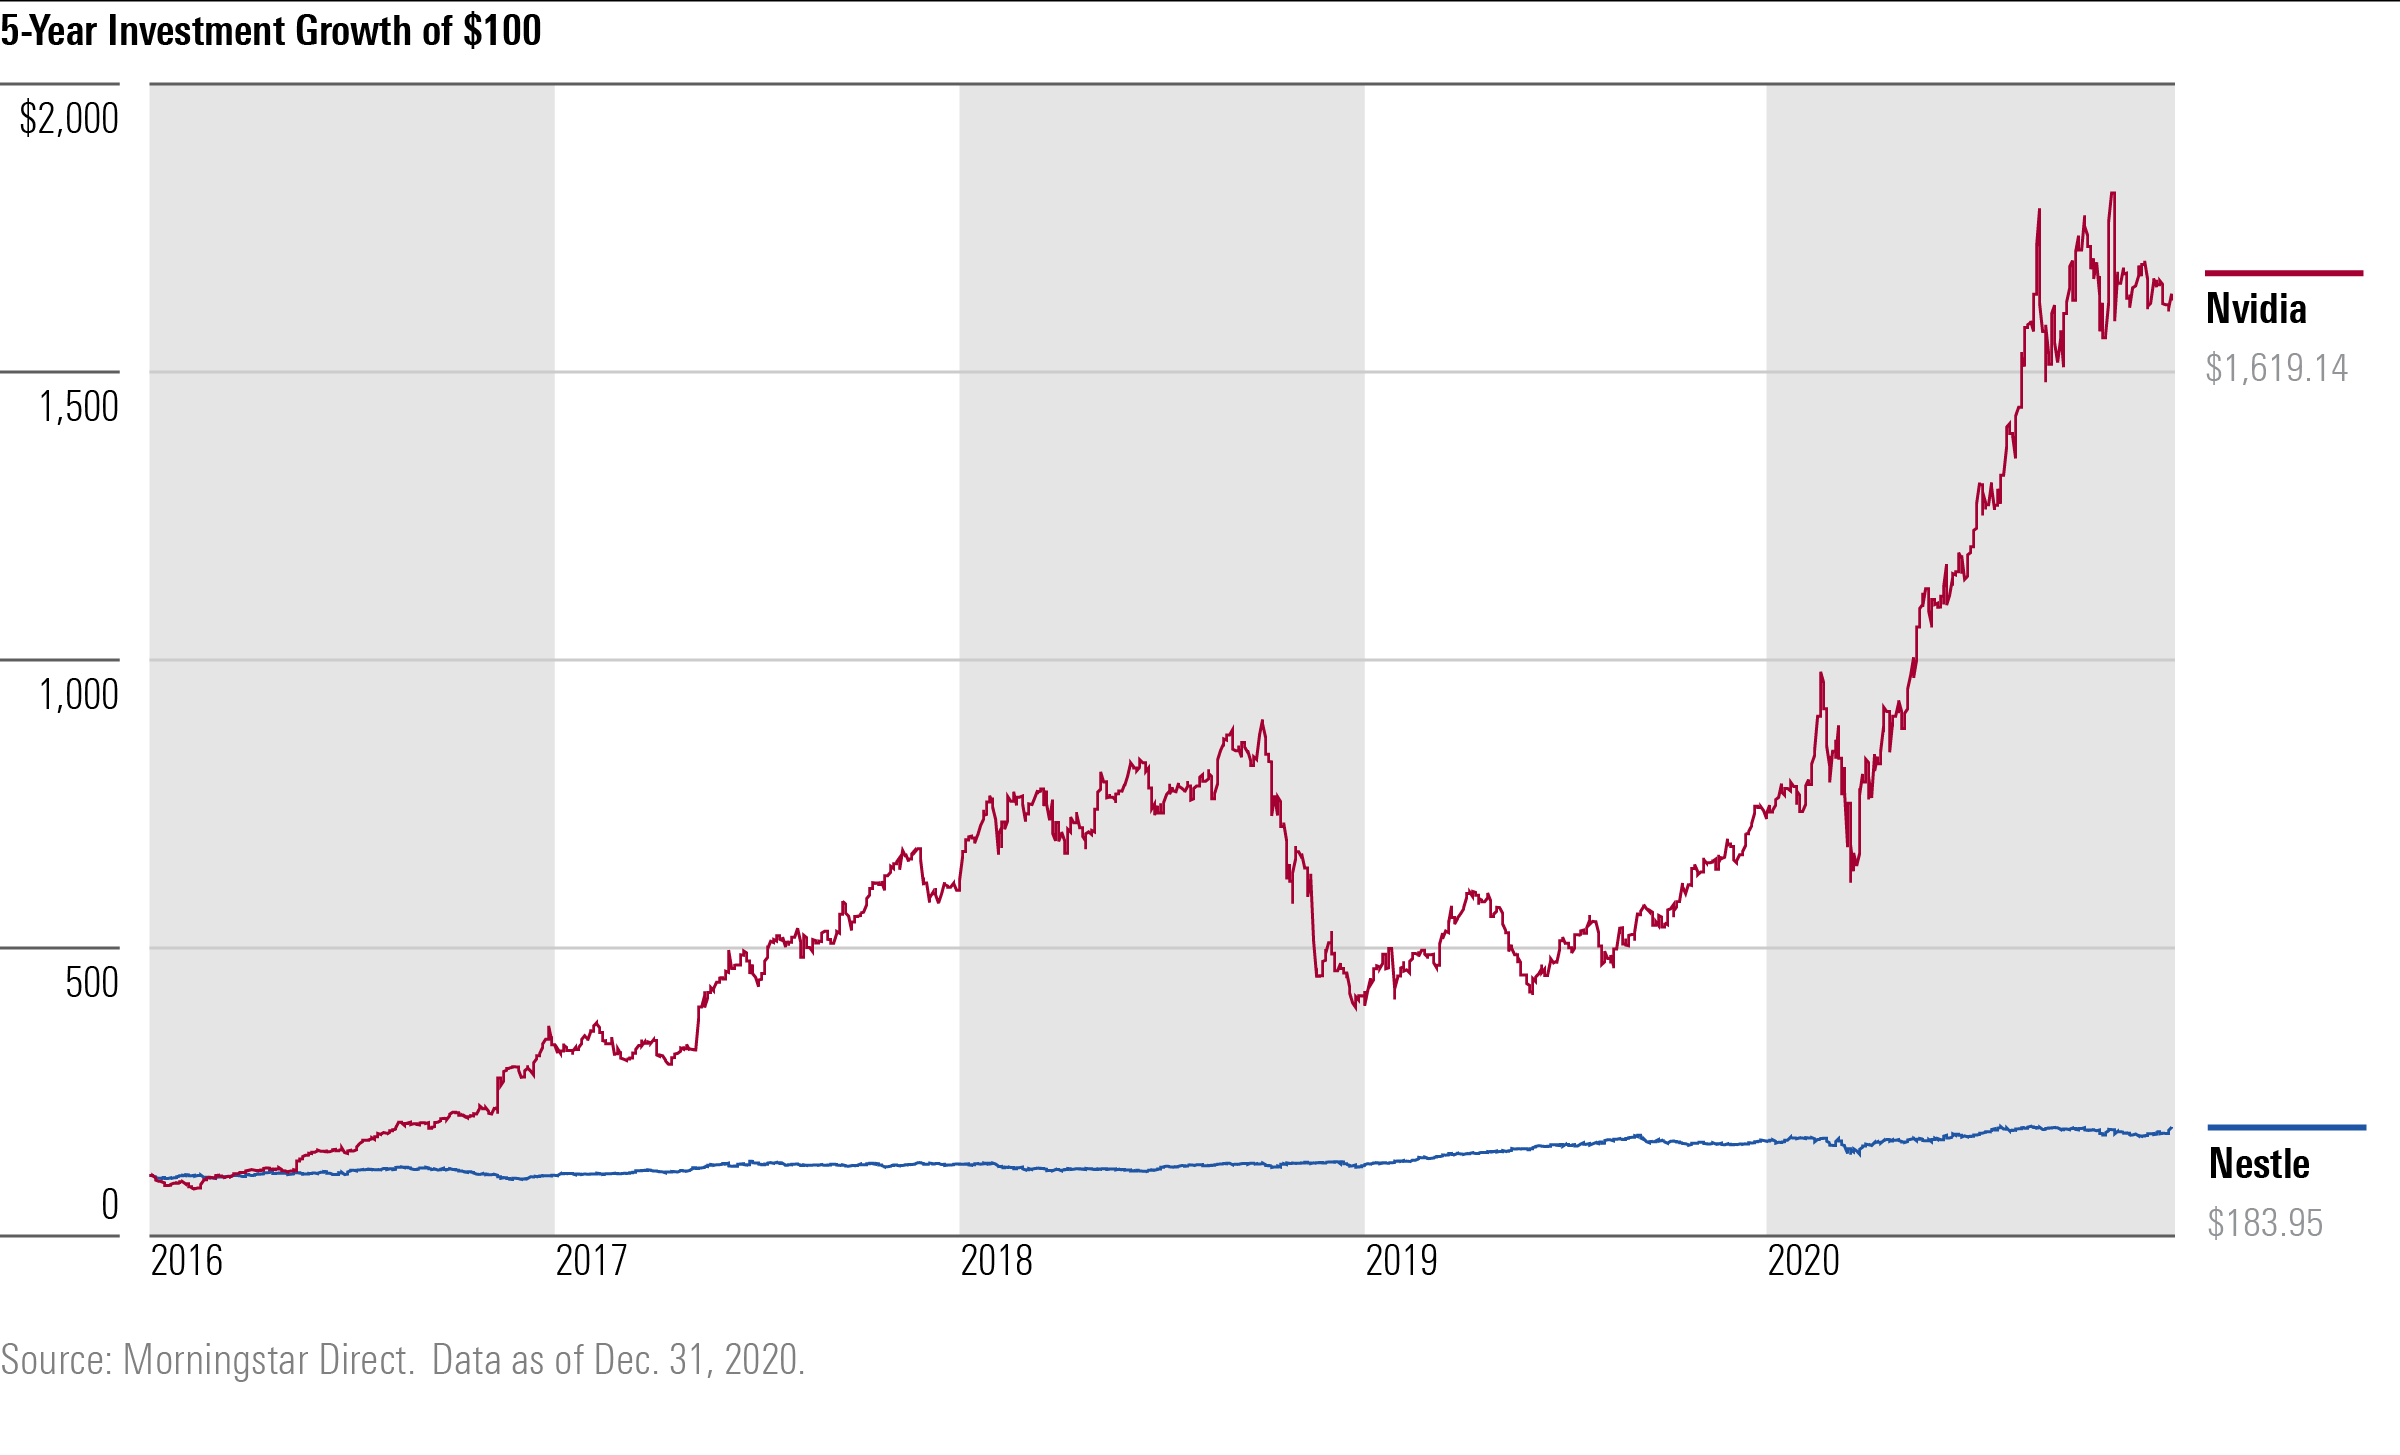 5 year investment growth of $100